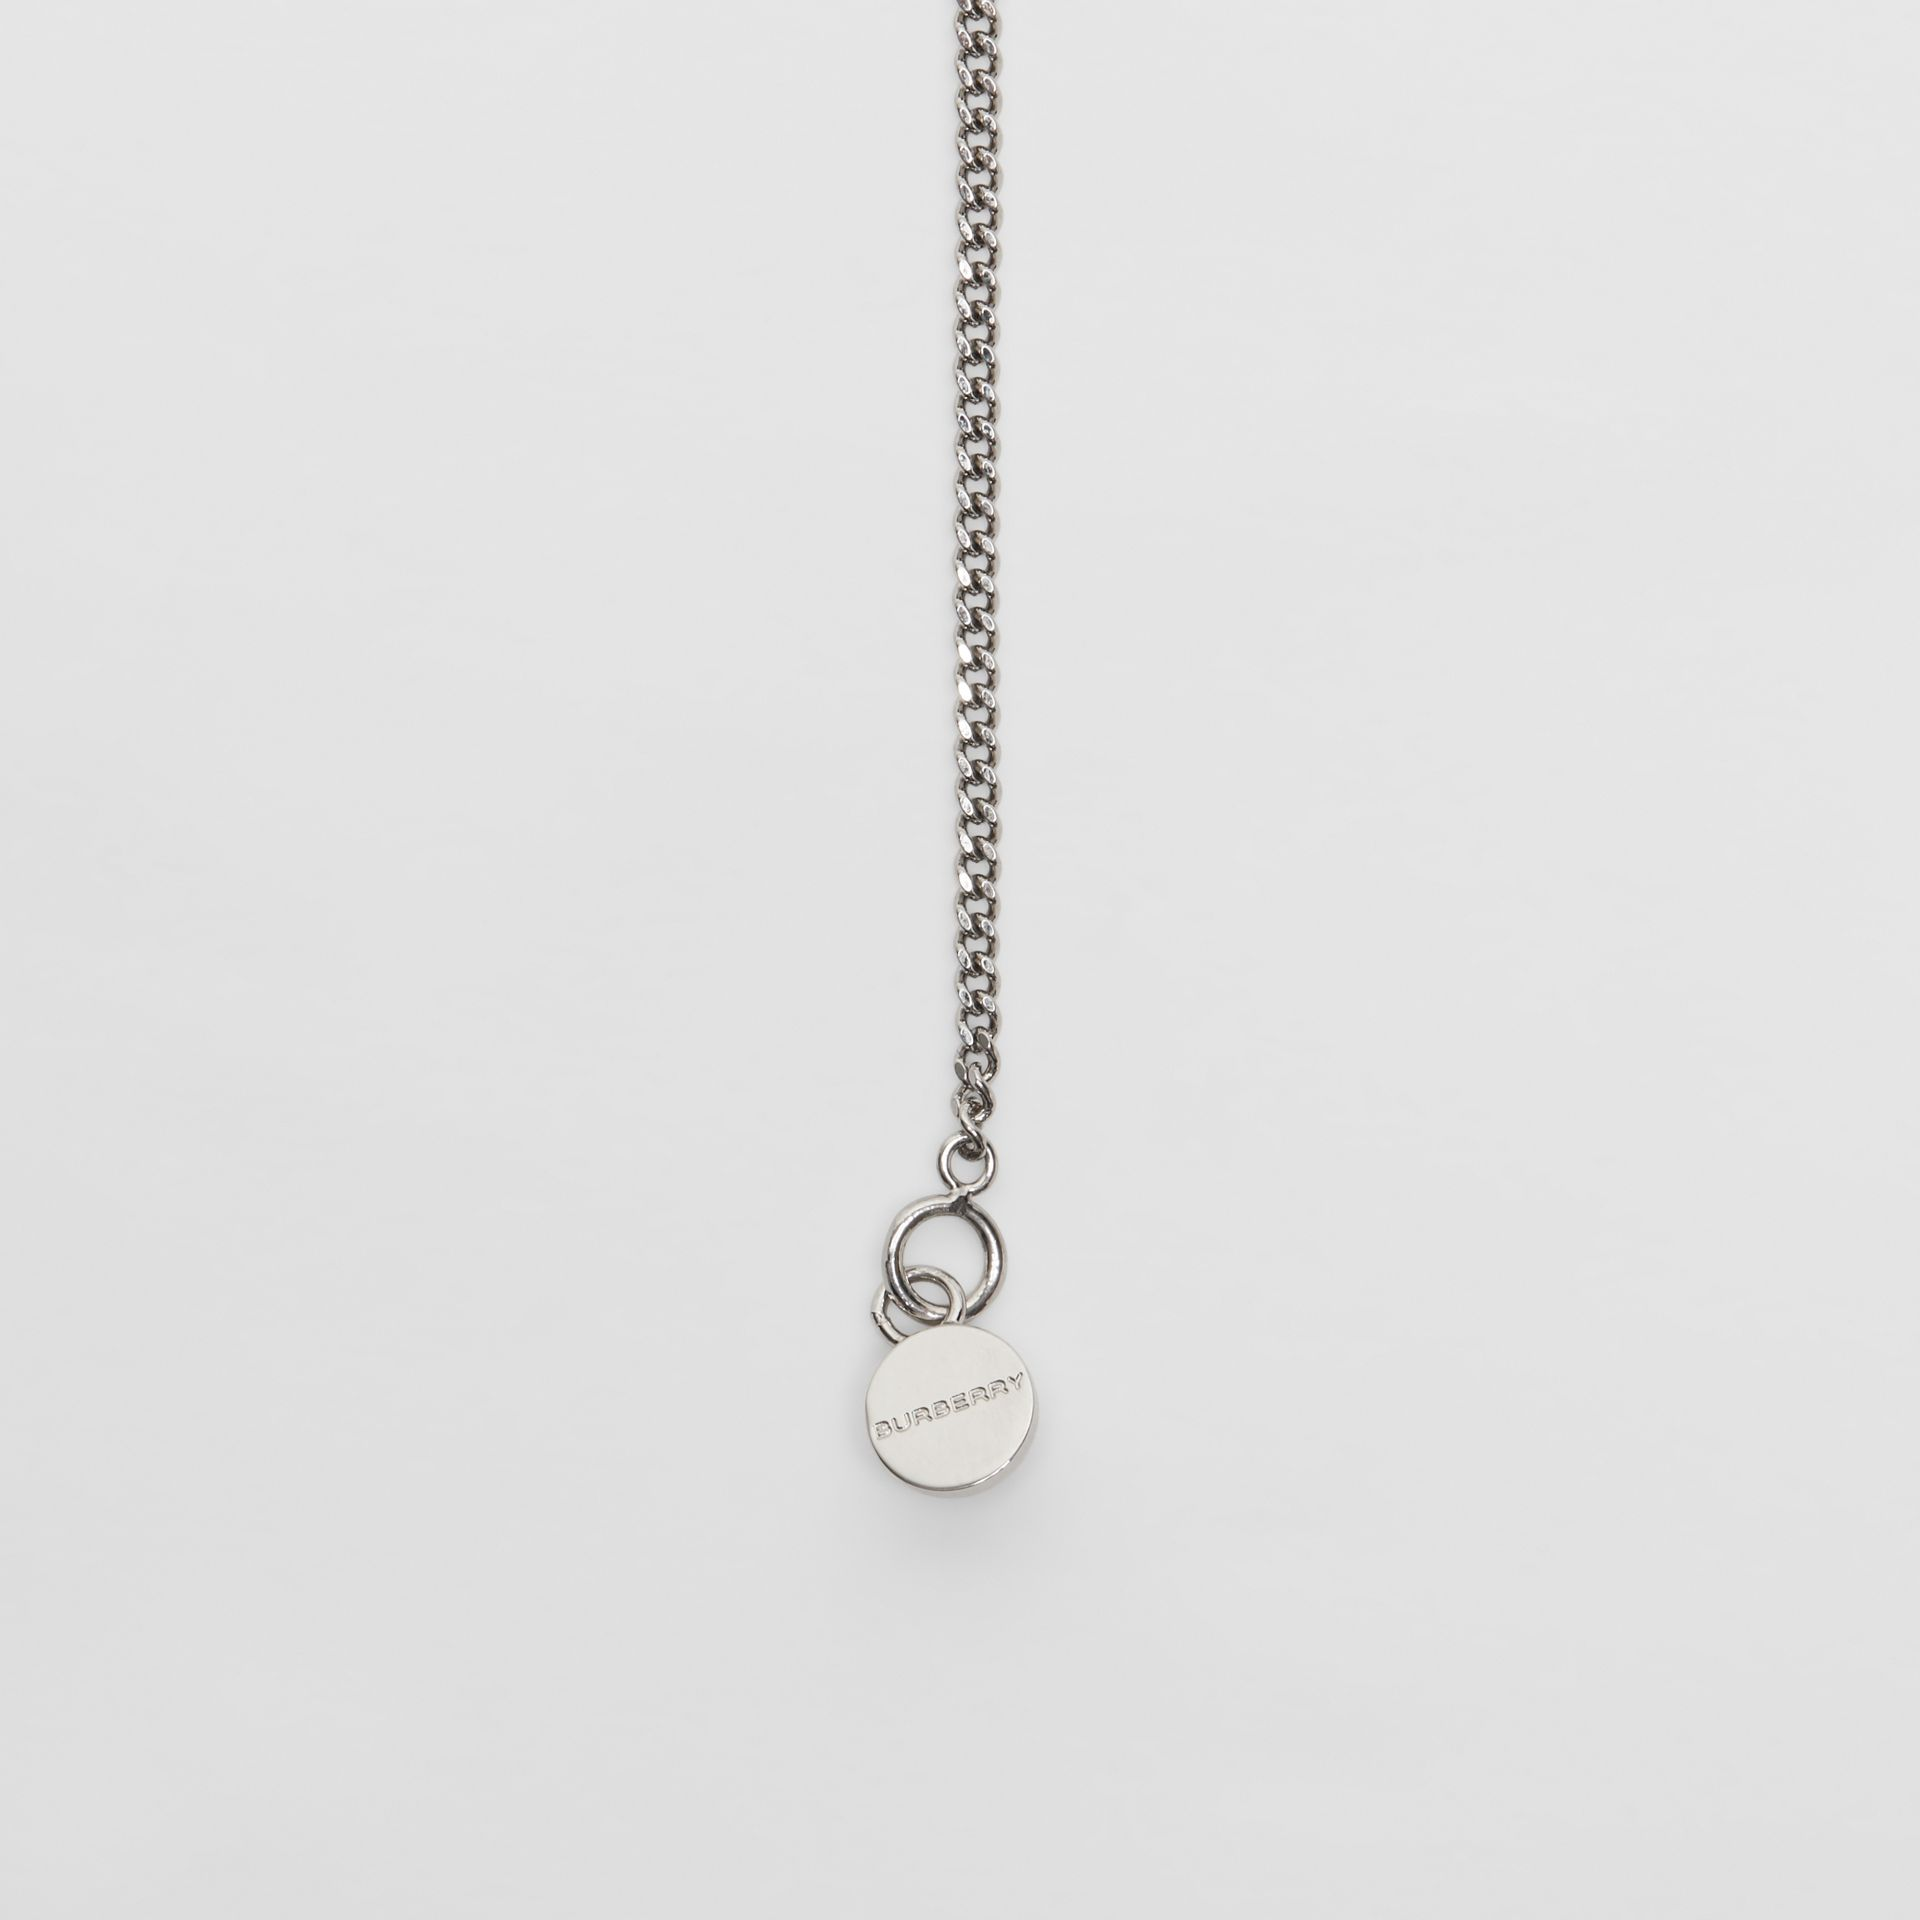 Palladium-plated Chain Necklace in Palladio - Women | Burberry United Kingdom - gallery image 1